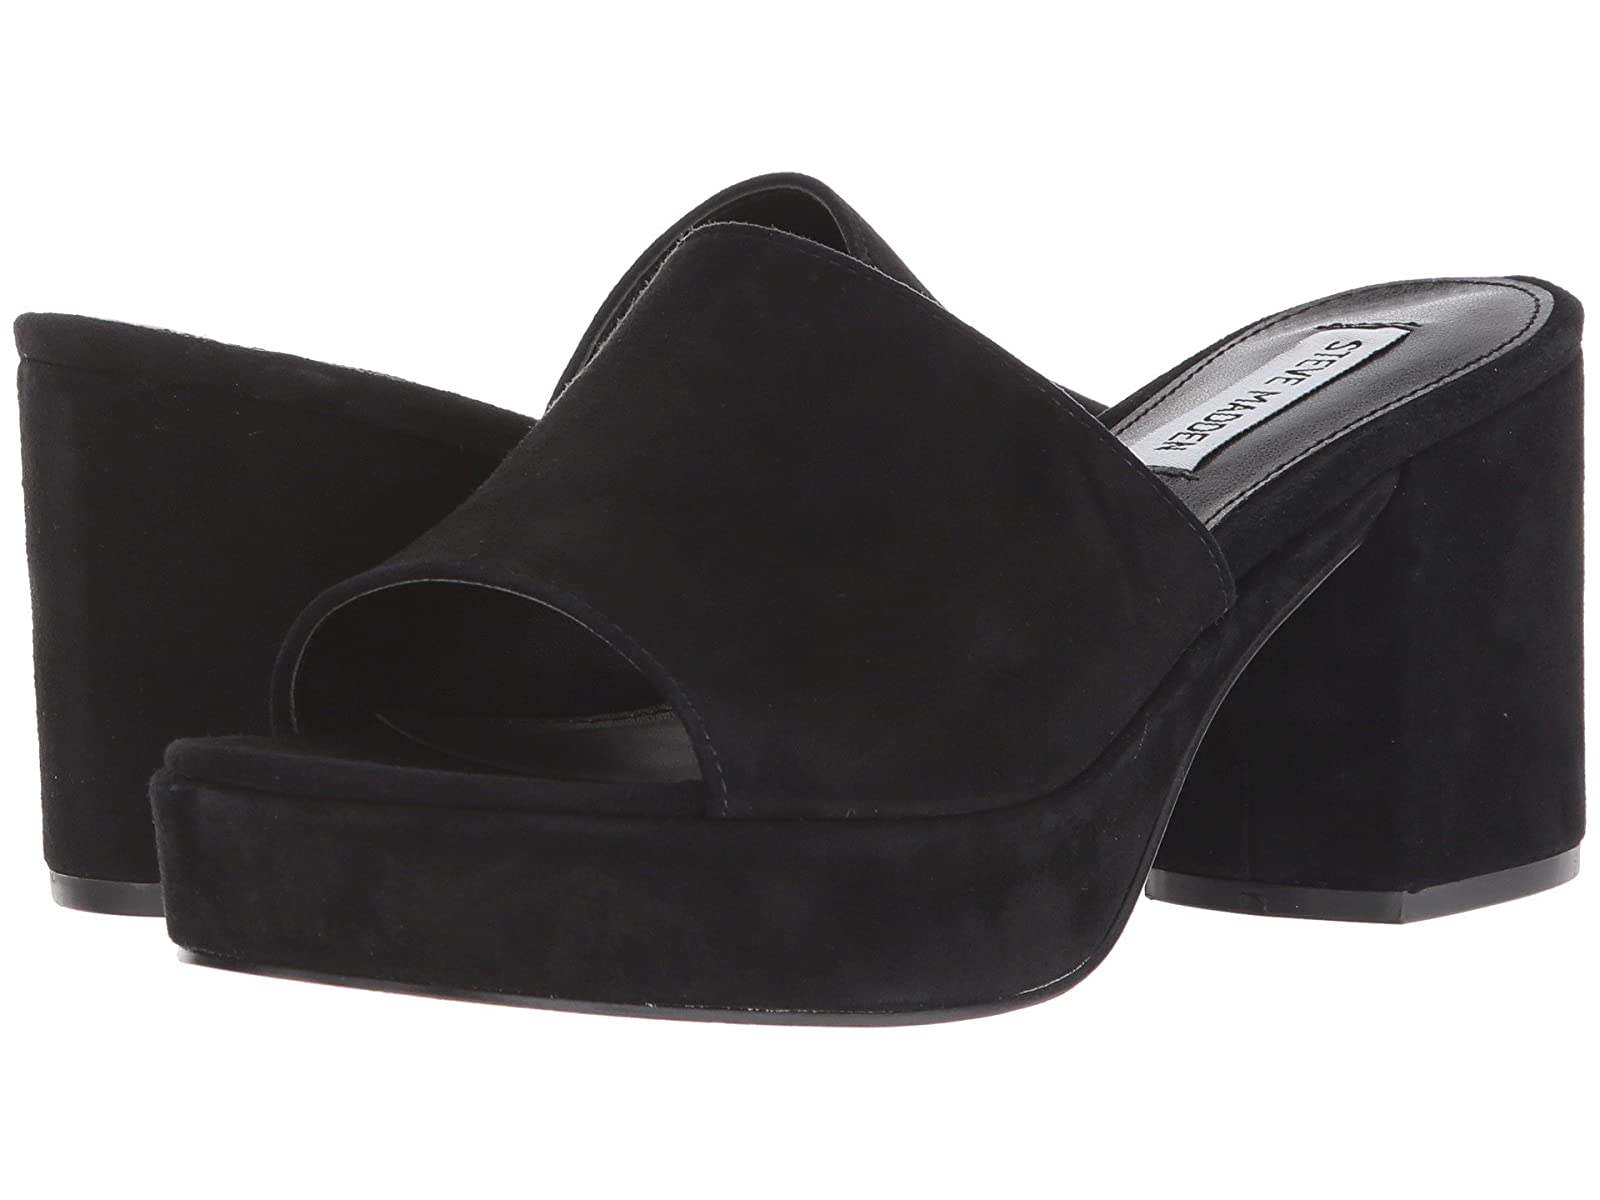 Steve Madden Relax Slid Block Heeled SandalCheap and distinctive eye-catching shoes